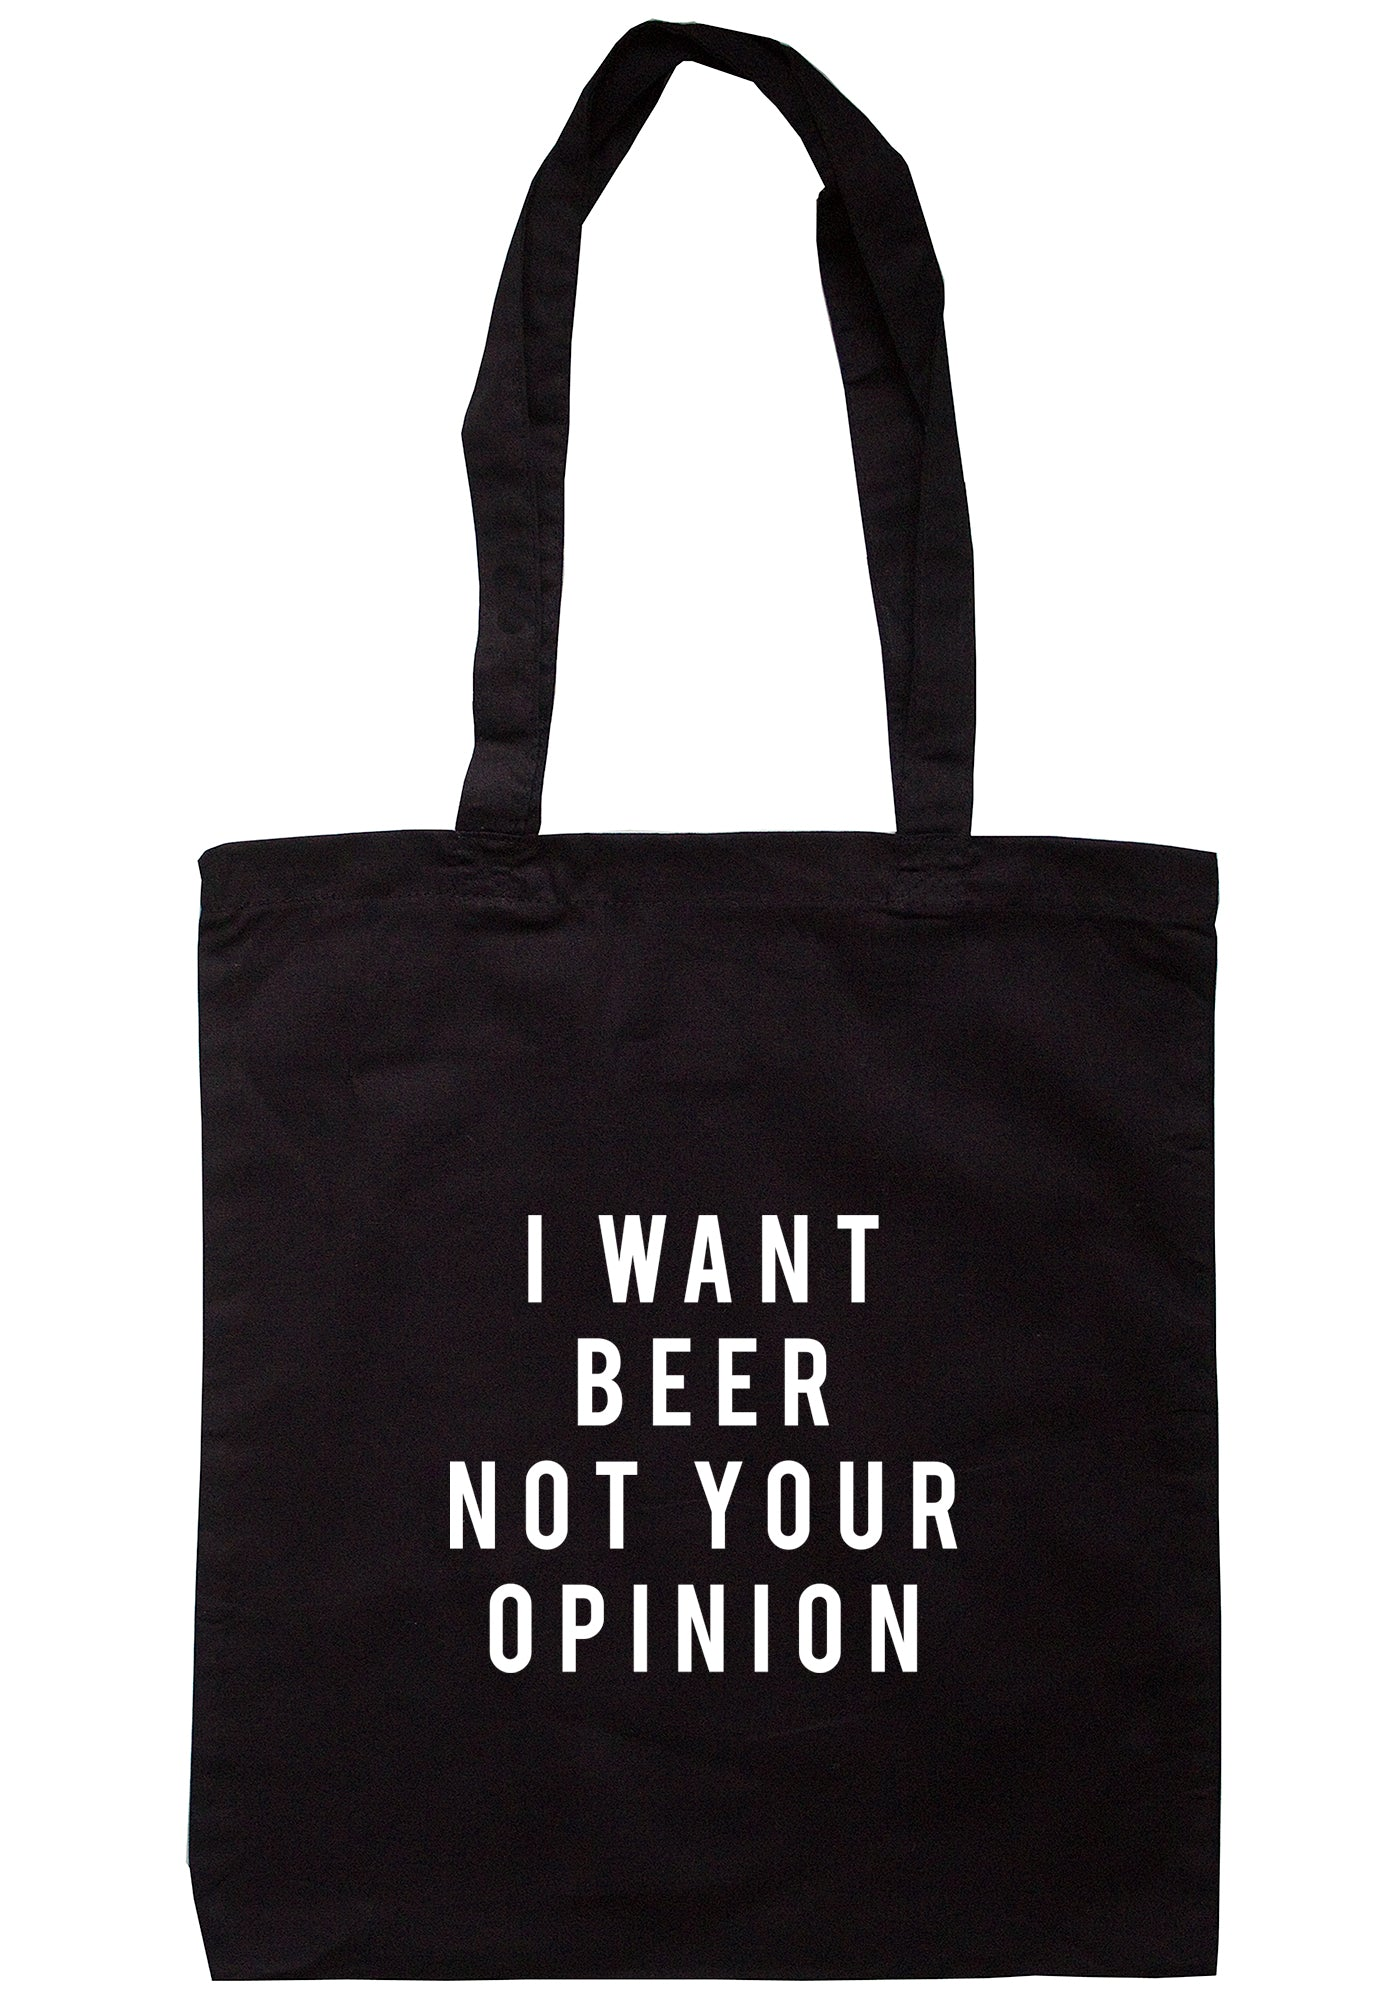 5a14d763dc4a I Want Beer Not Your Opinion Tote Bag TB1986 – Illustrated Identity Ltd.